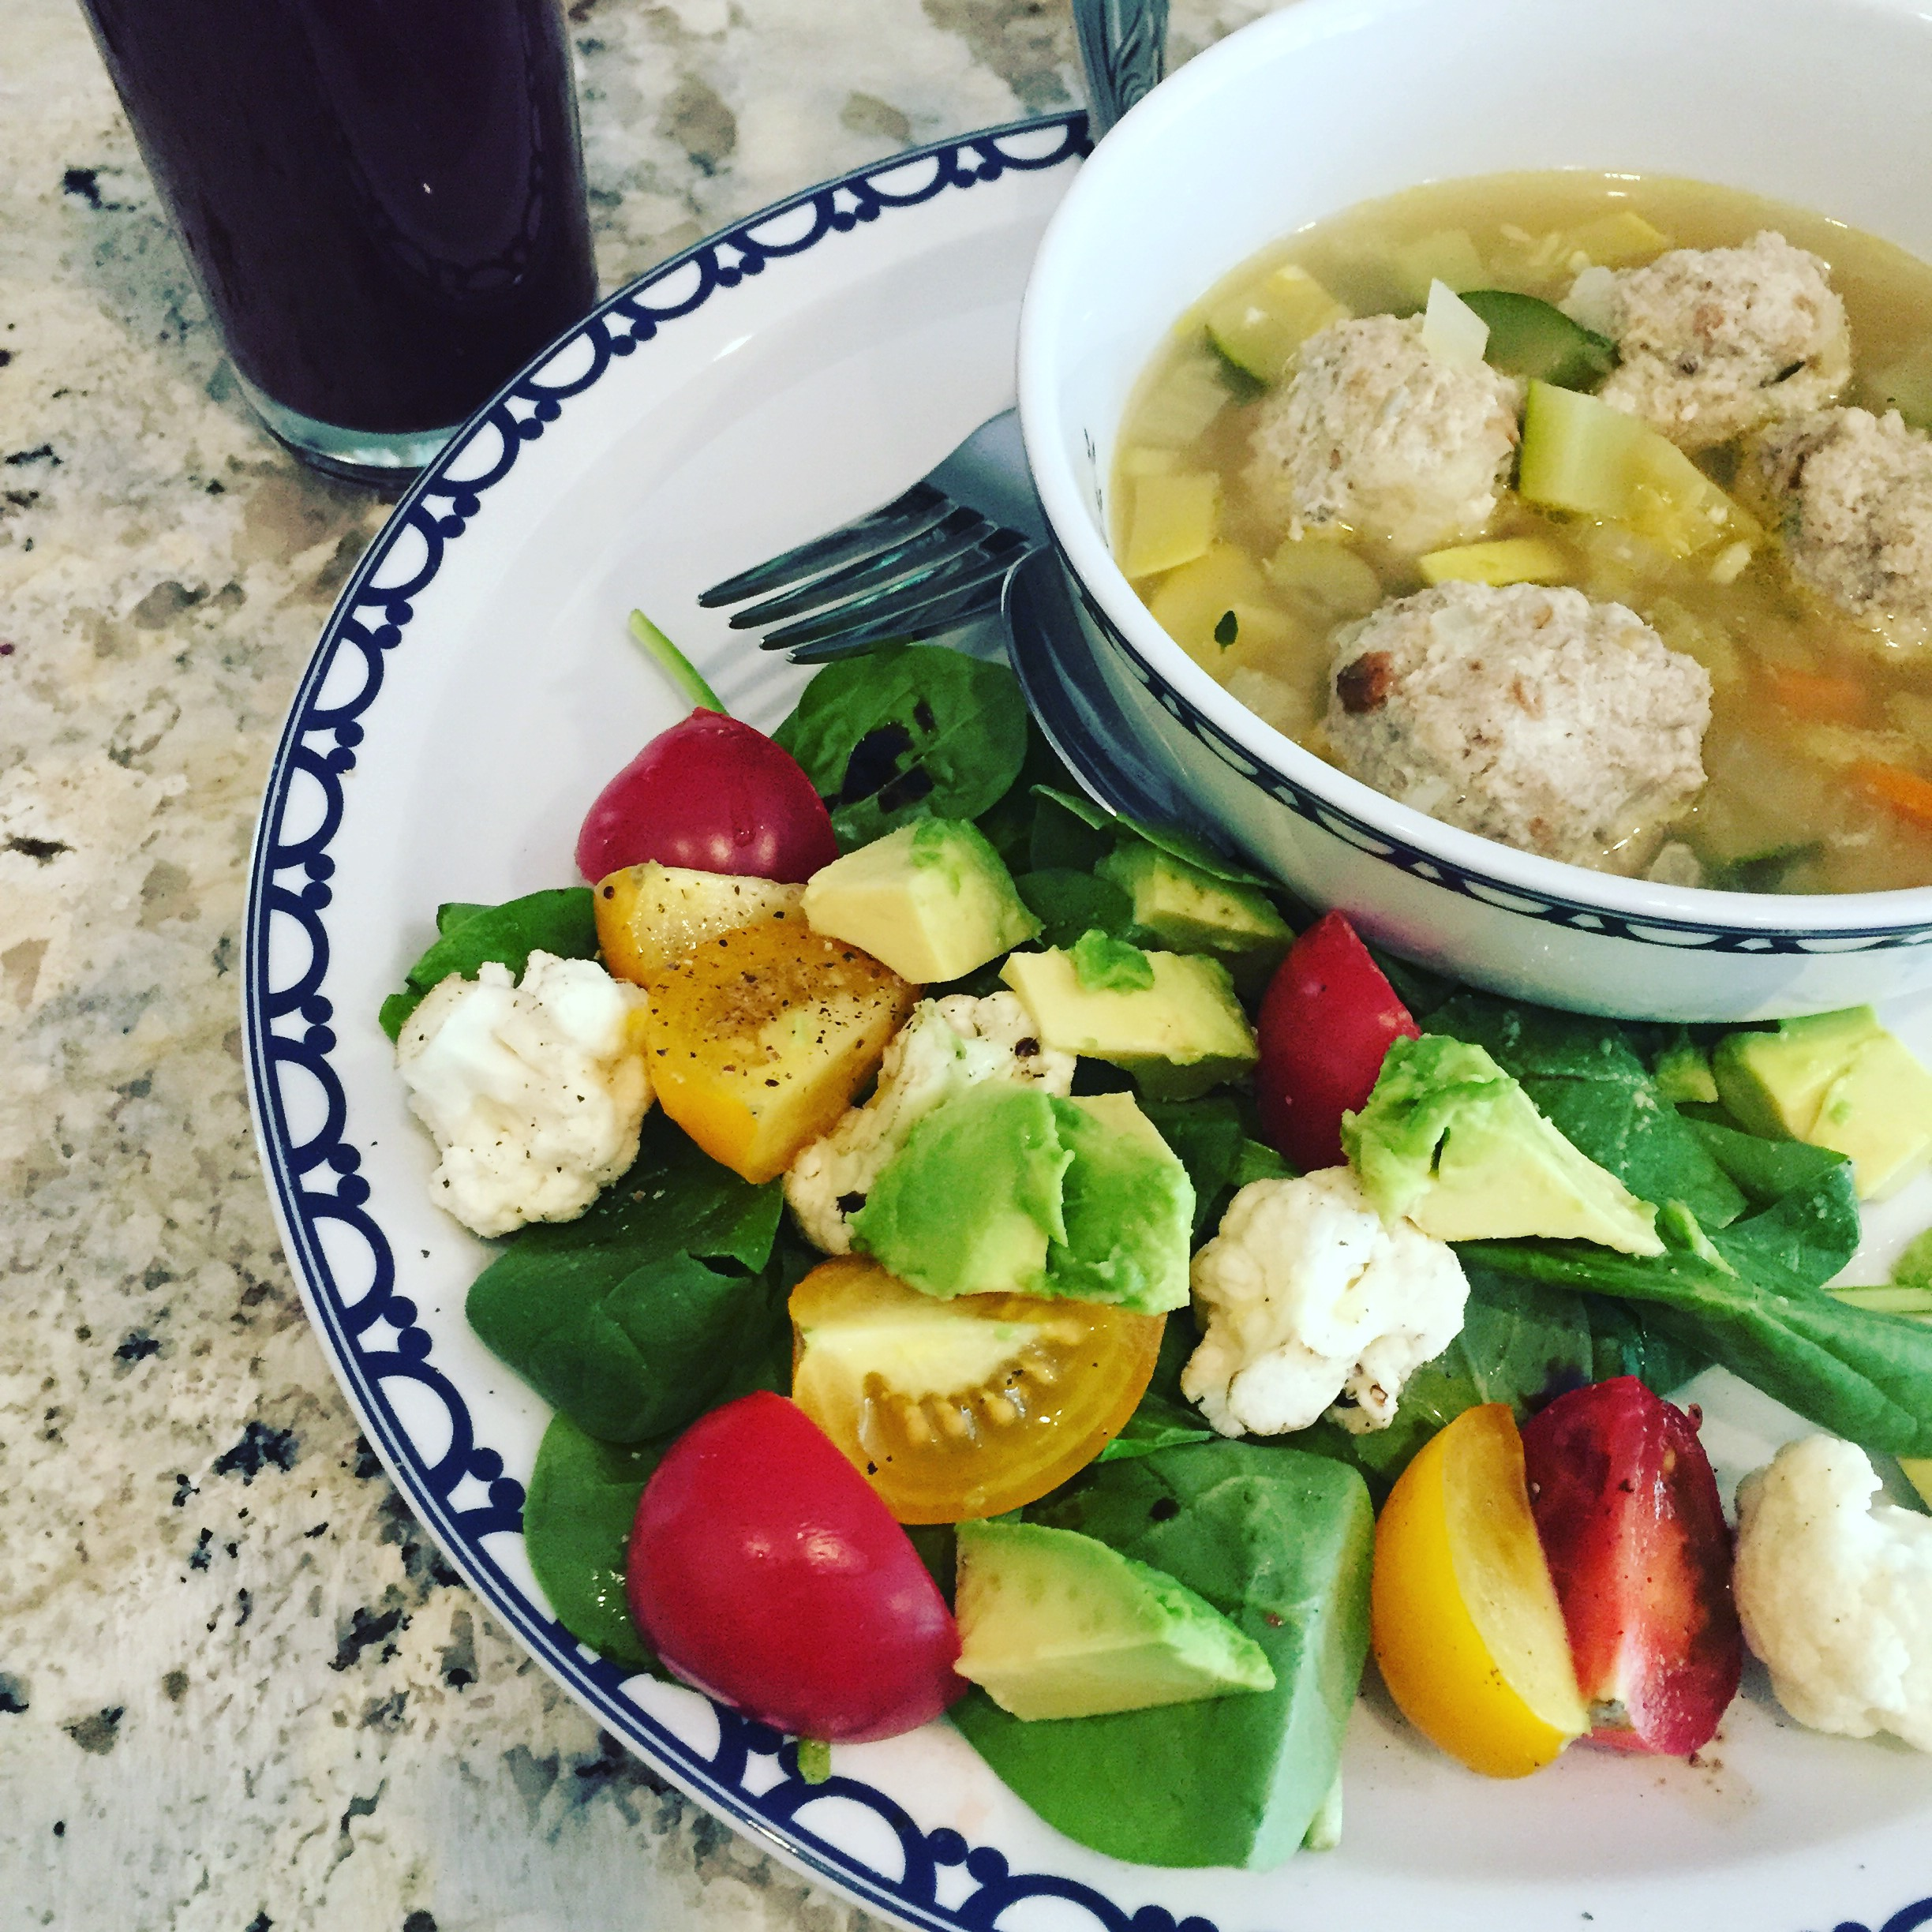 Simple And Nutritious: Easy And Nutritious Meal Ideas